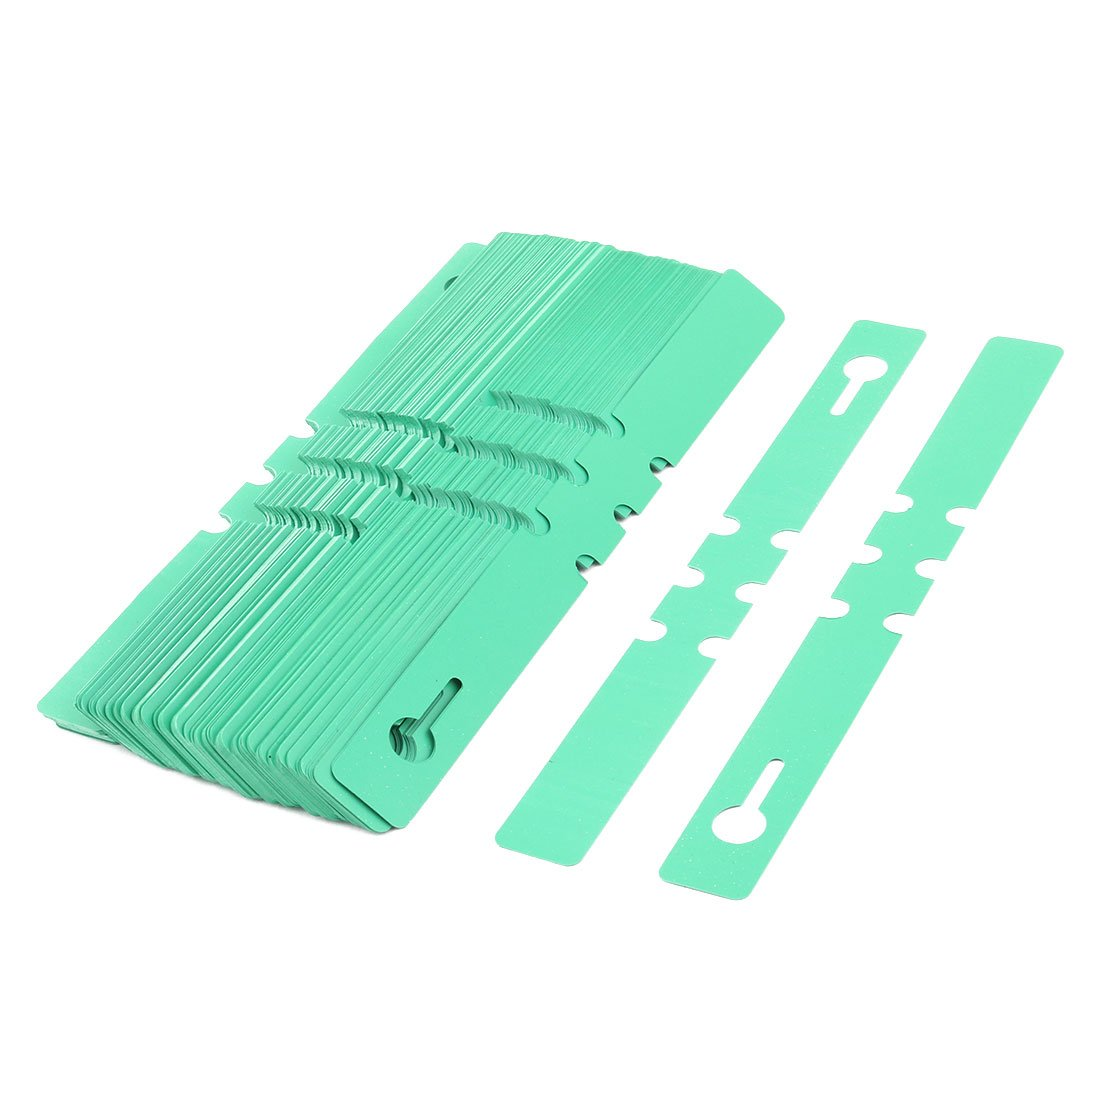 uxcell Plastic Home Outdoor Garden Plant Seed Name Marking Tag Label Marker 200 Pcs Green